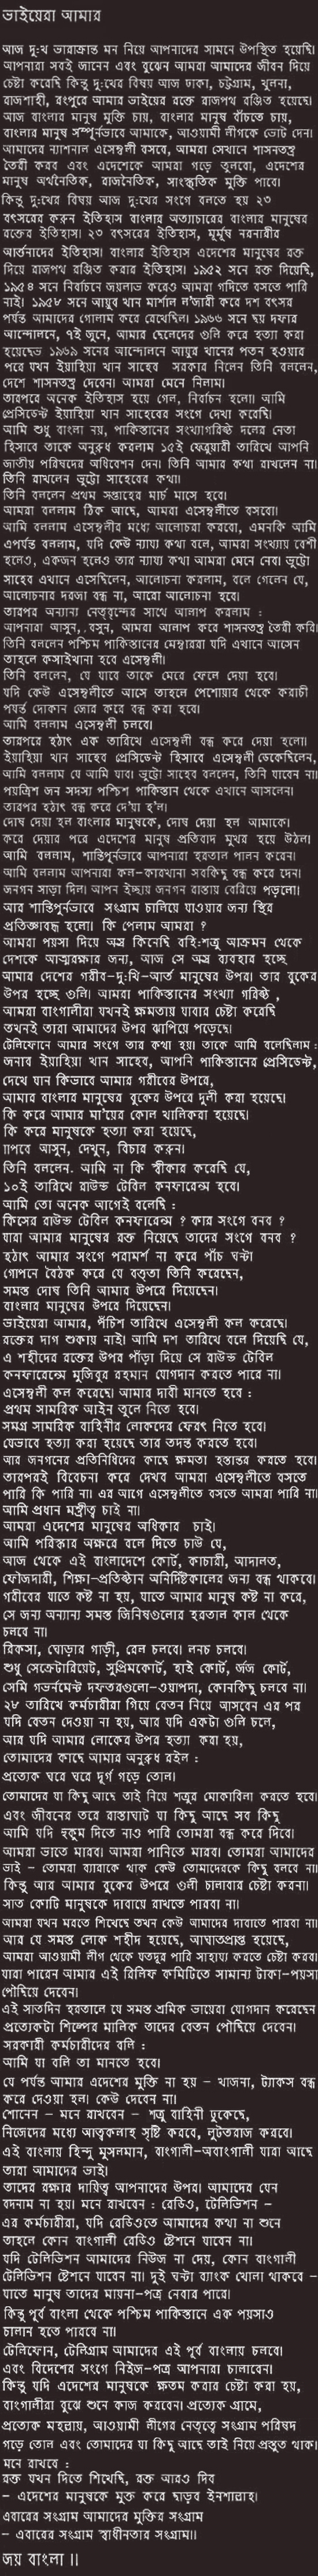 Sheikh Mujibur Rahman's 7 March 1971 speech